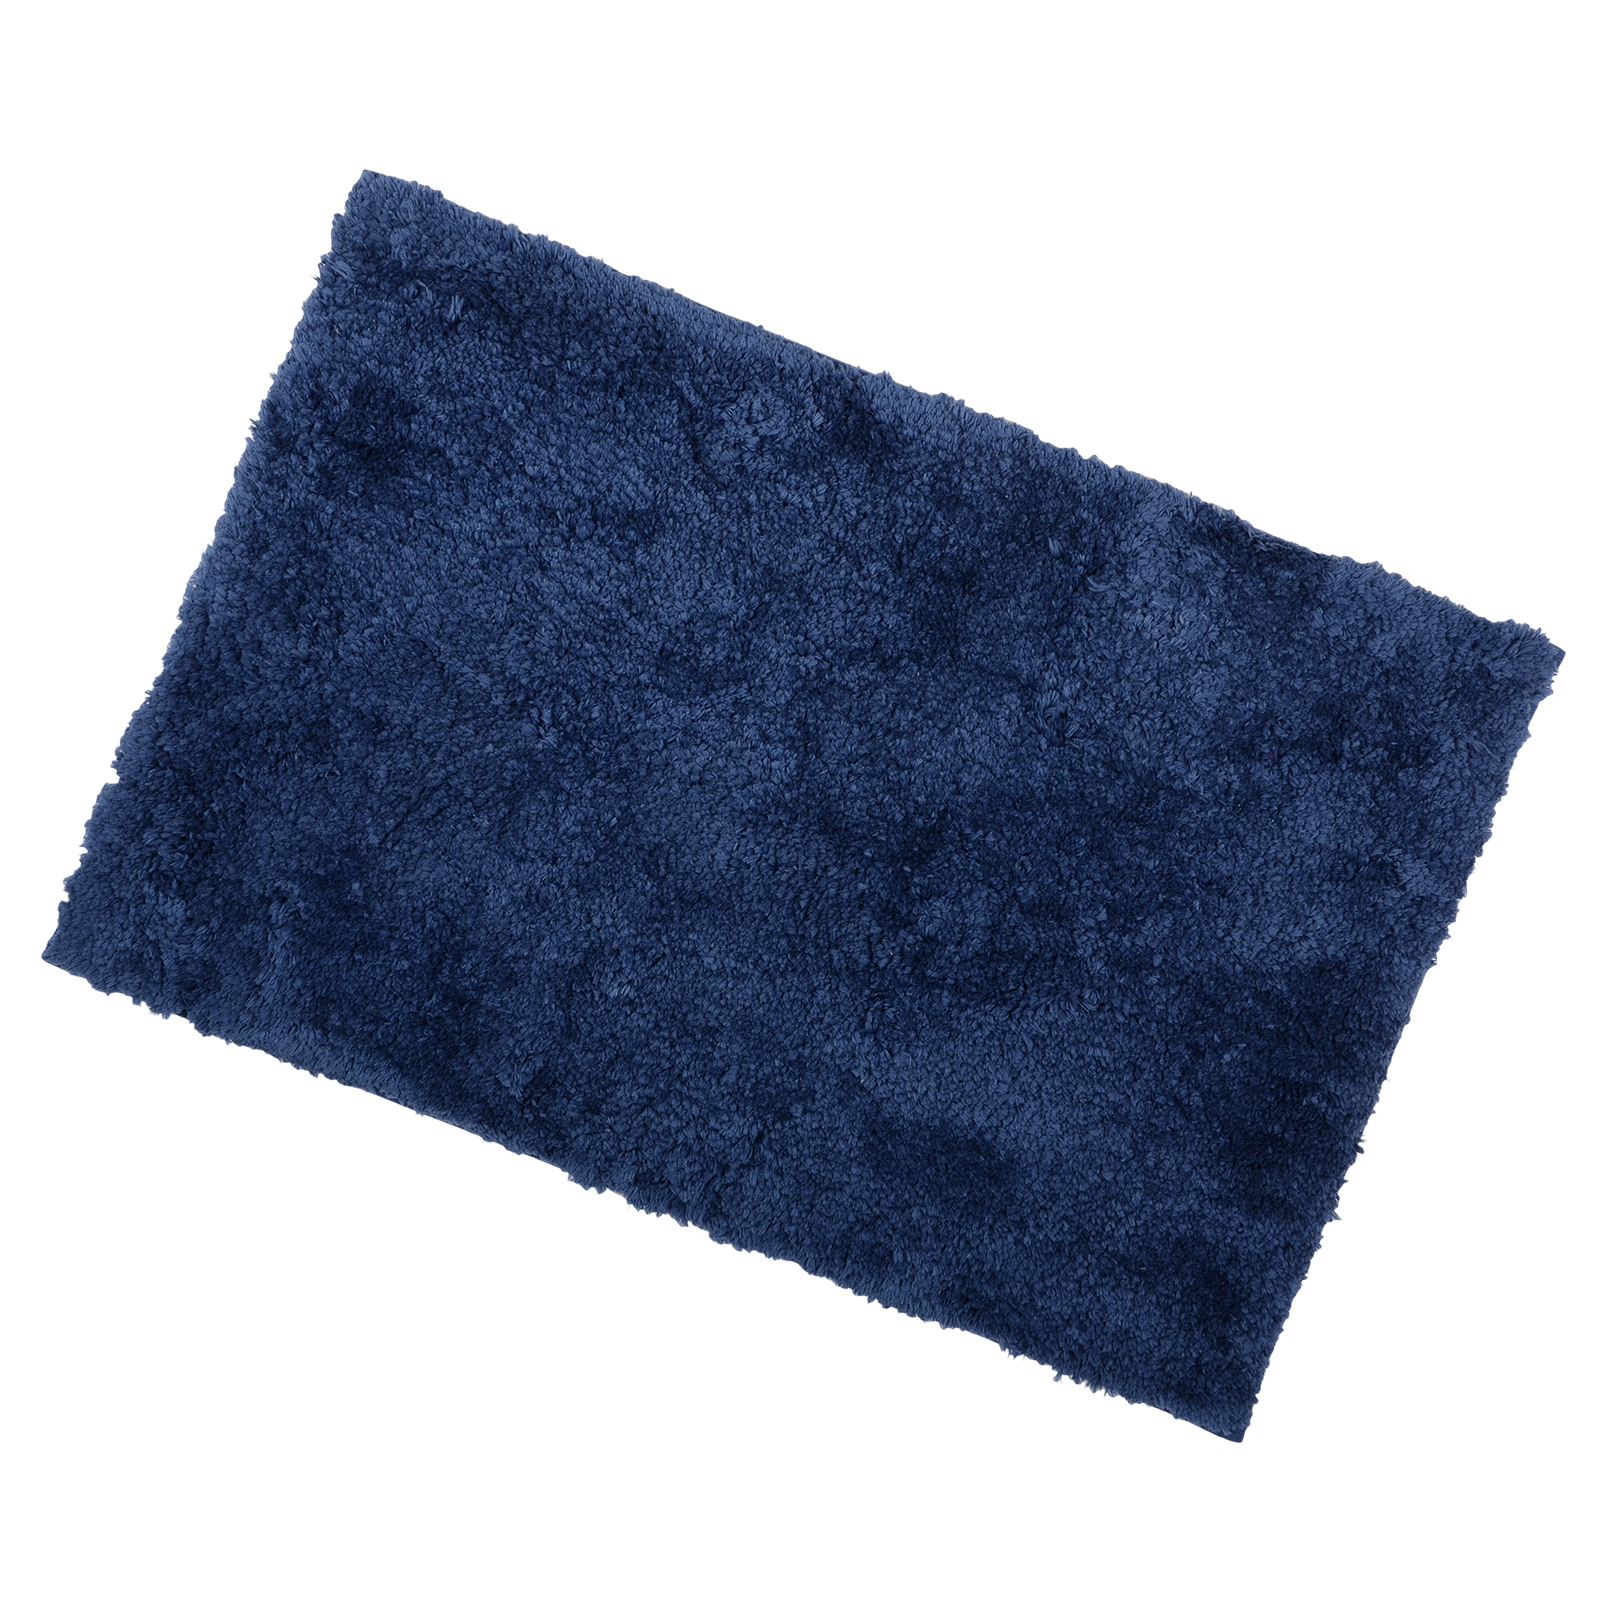 Luxury Microfibre Tufted Bath Mat With Anti Slip Backing